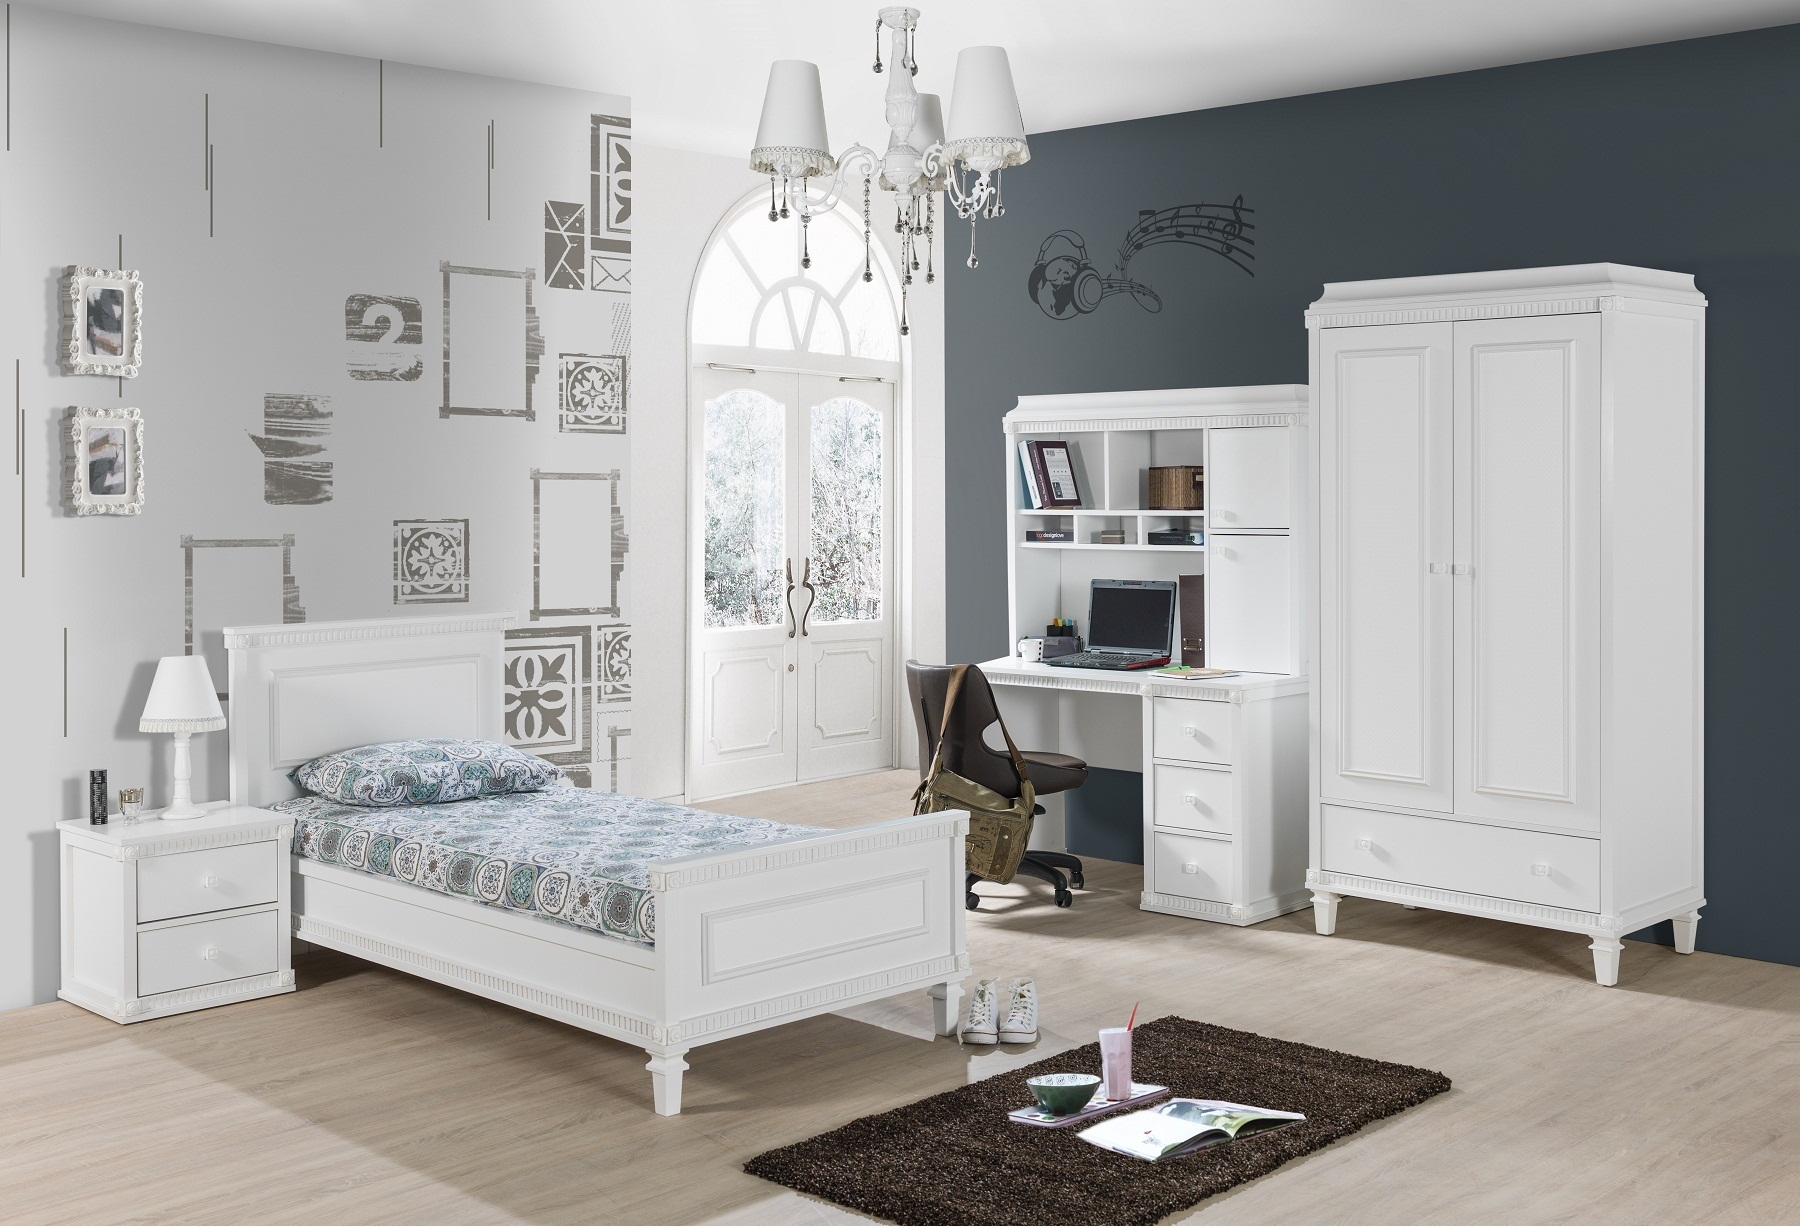 kinderzimmer hazeran weiss landhausstil 780 2468. Black Bedroom Furniture Sets. Home Design Ideas